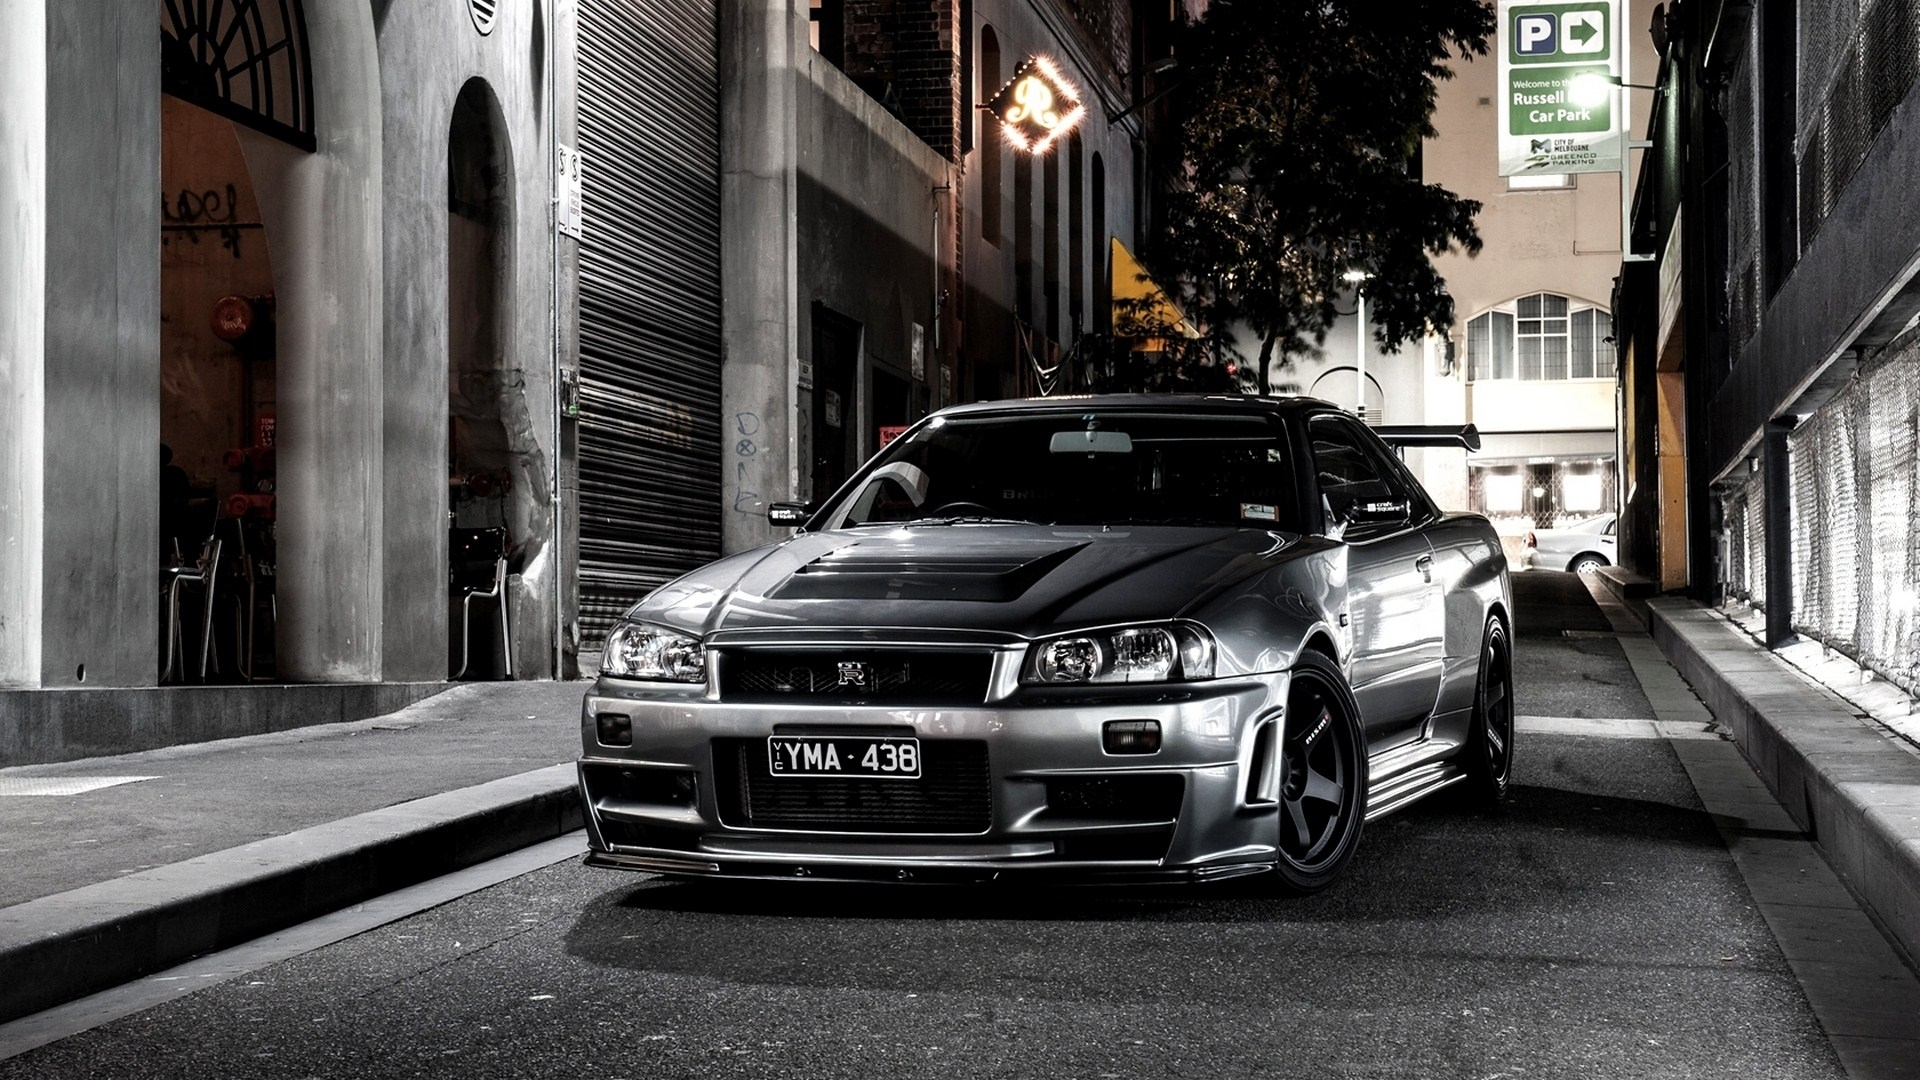 R34 Background